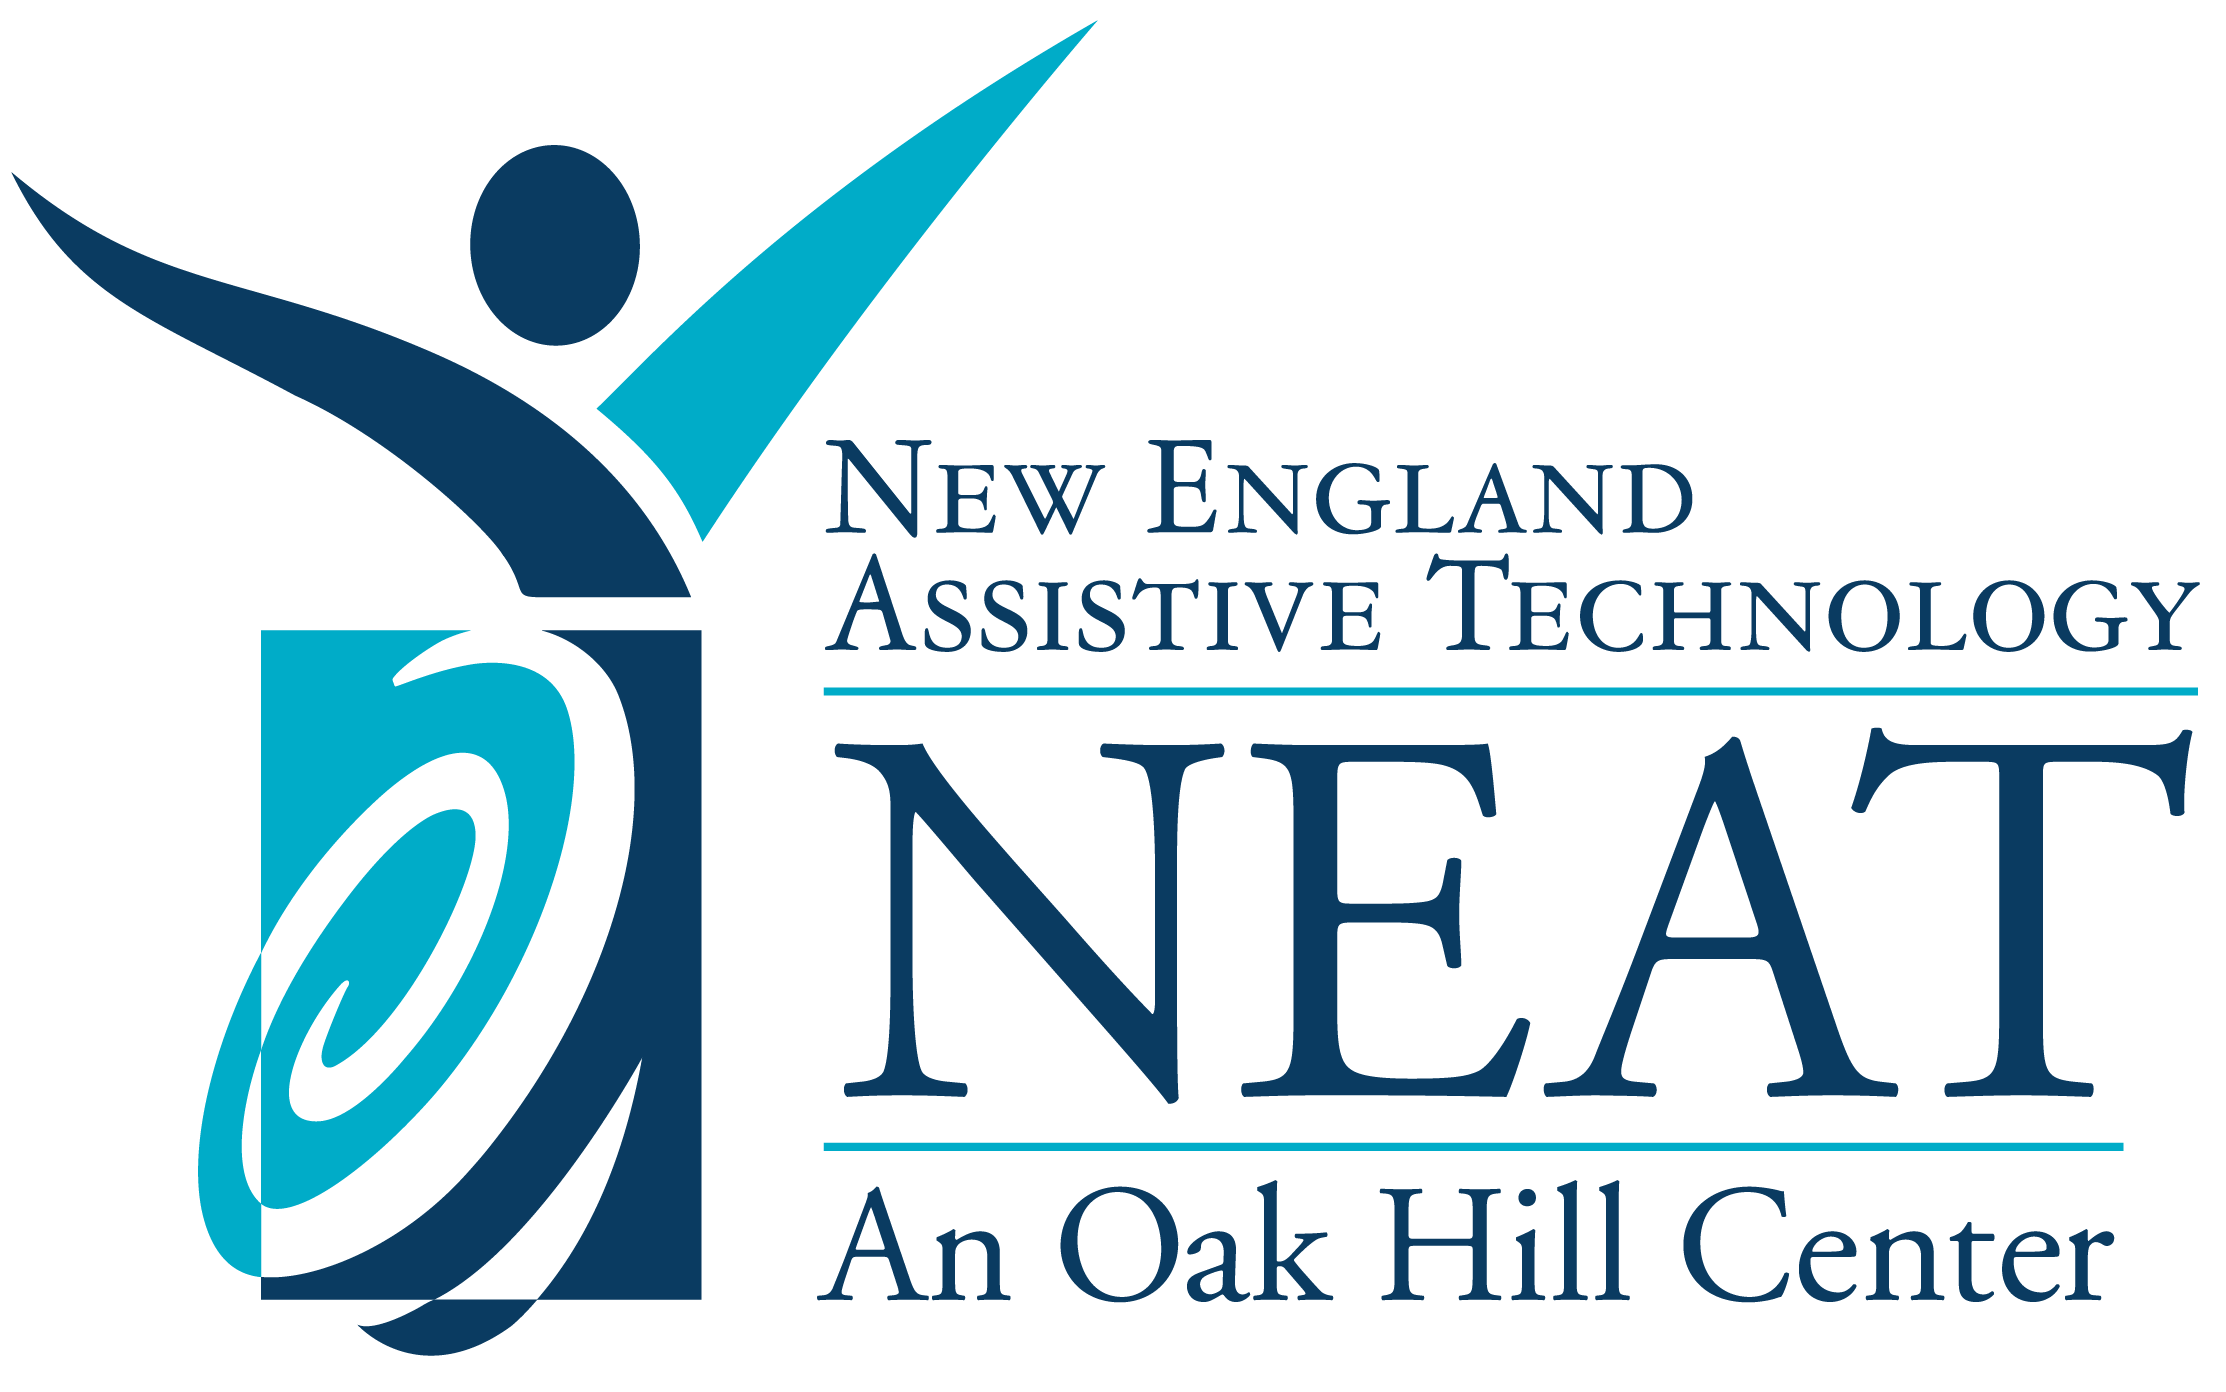 New England Assistive Technology (NEAT), an oak Hill Center logo